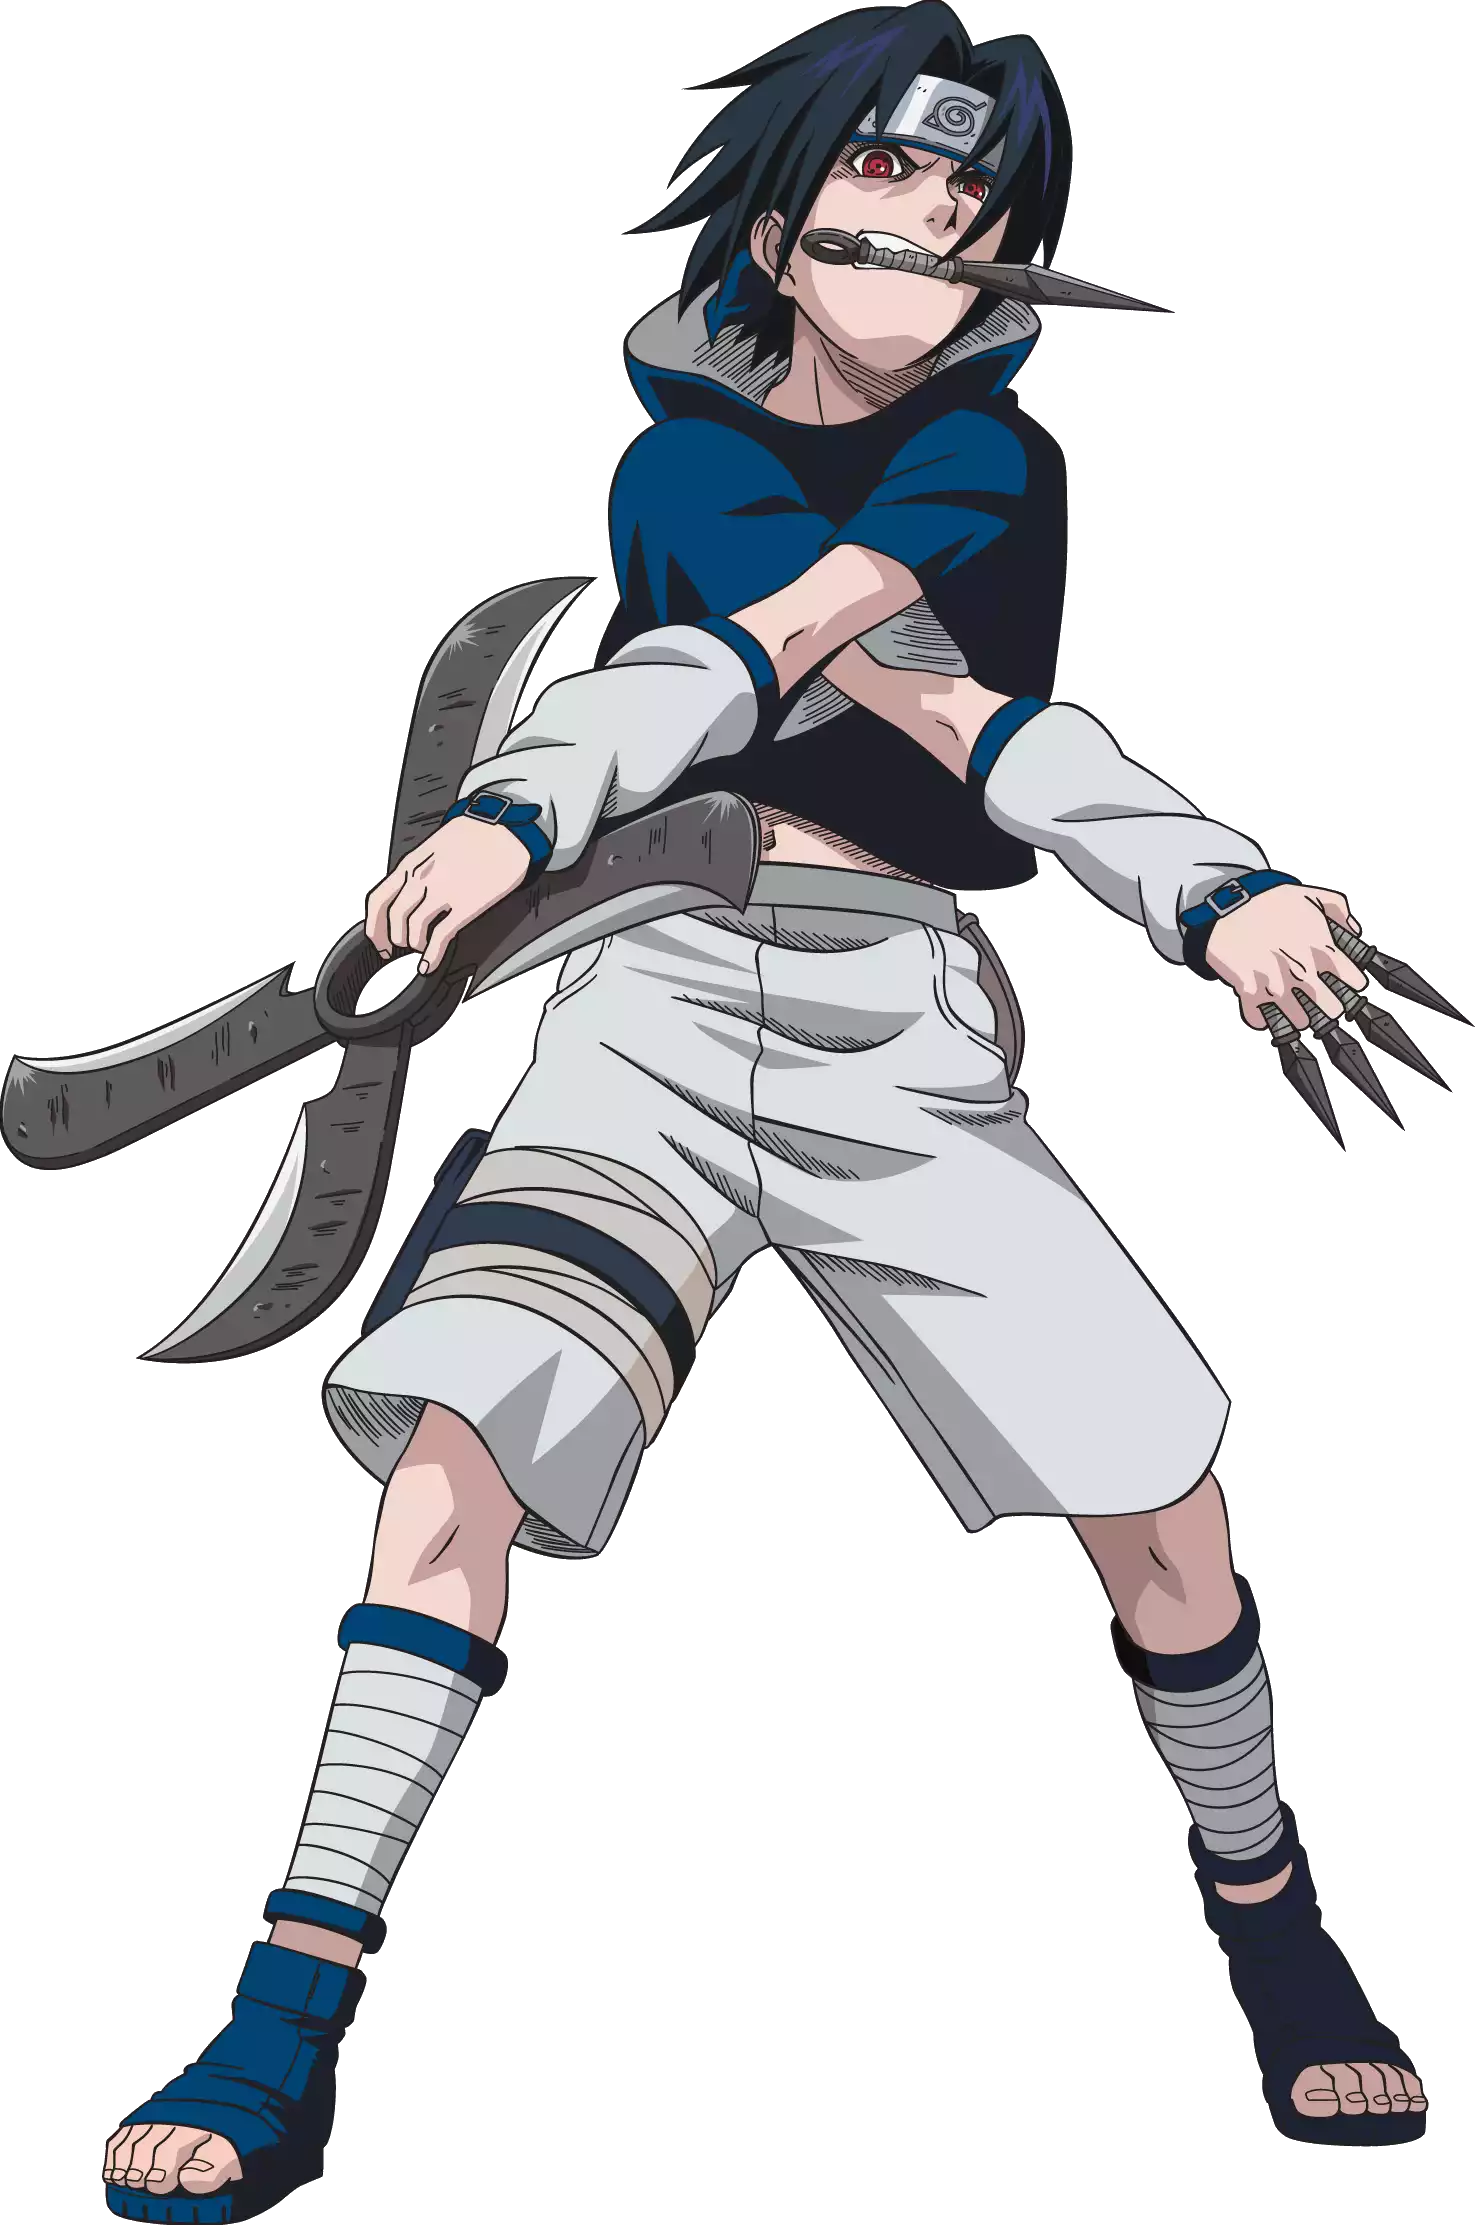 sasuke uchiha vs battles wiki fandom powered by wikia